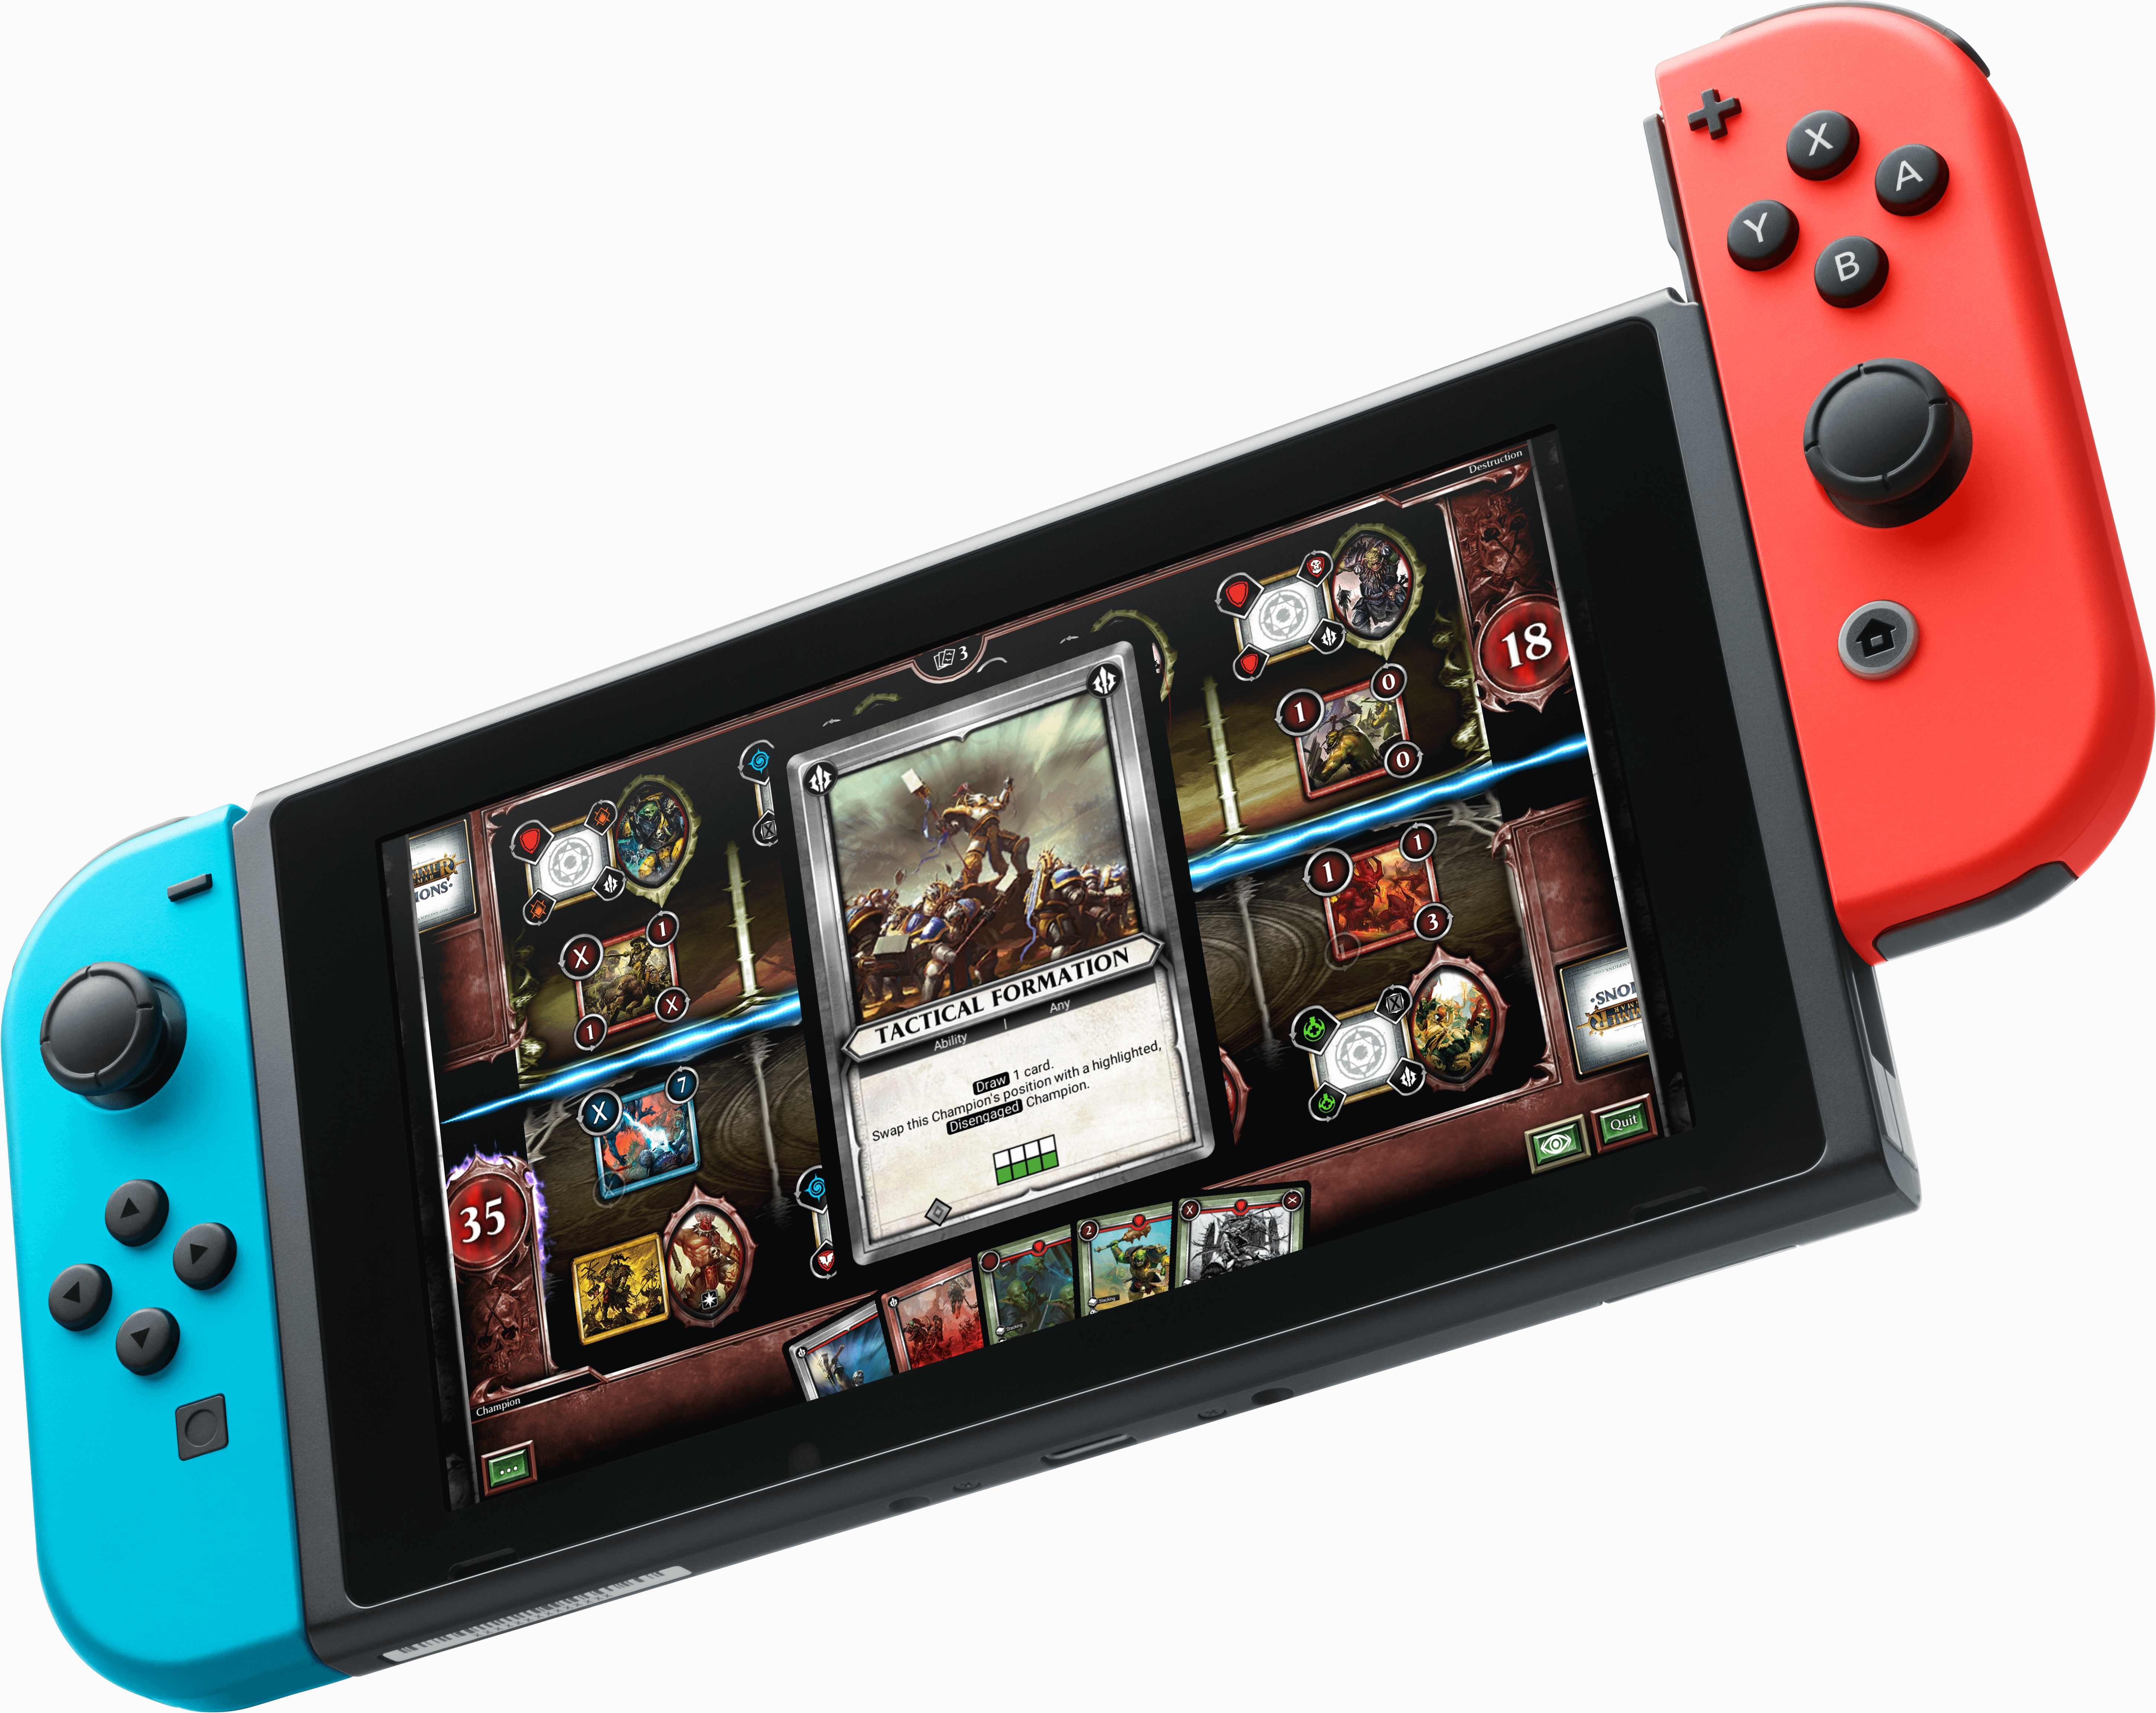 http://www.cosmocover.com/wp-content/uploads/2019/04/Nintendo-Switch-Screen-1.png